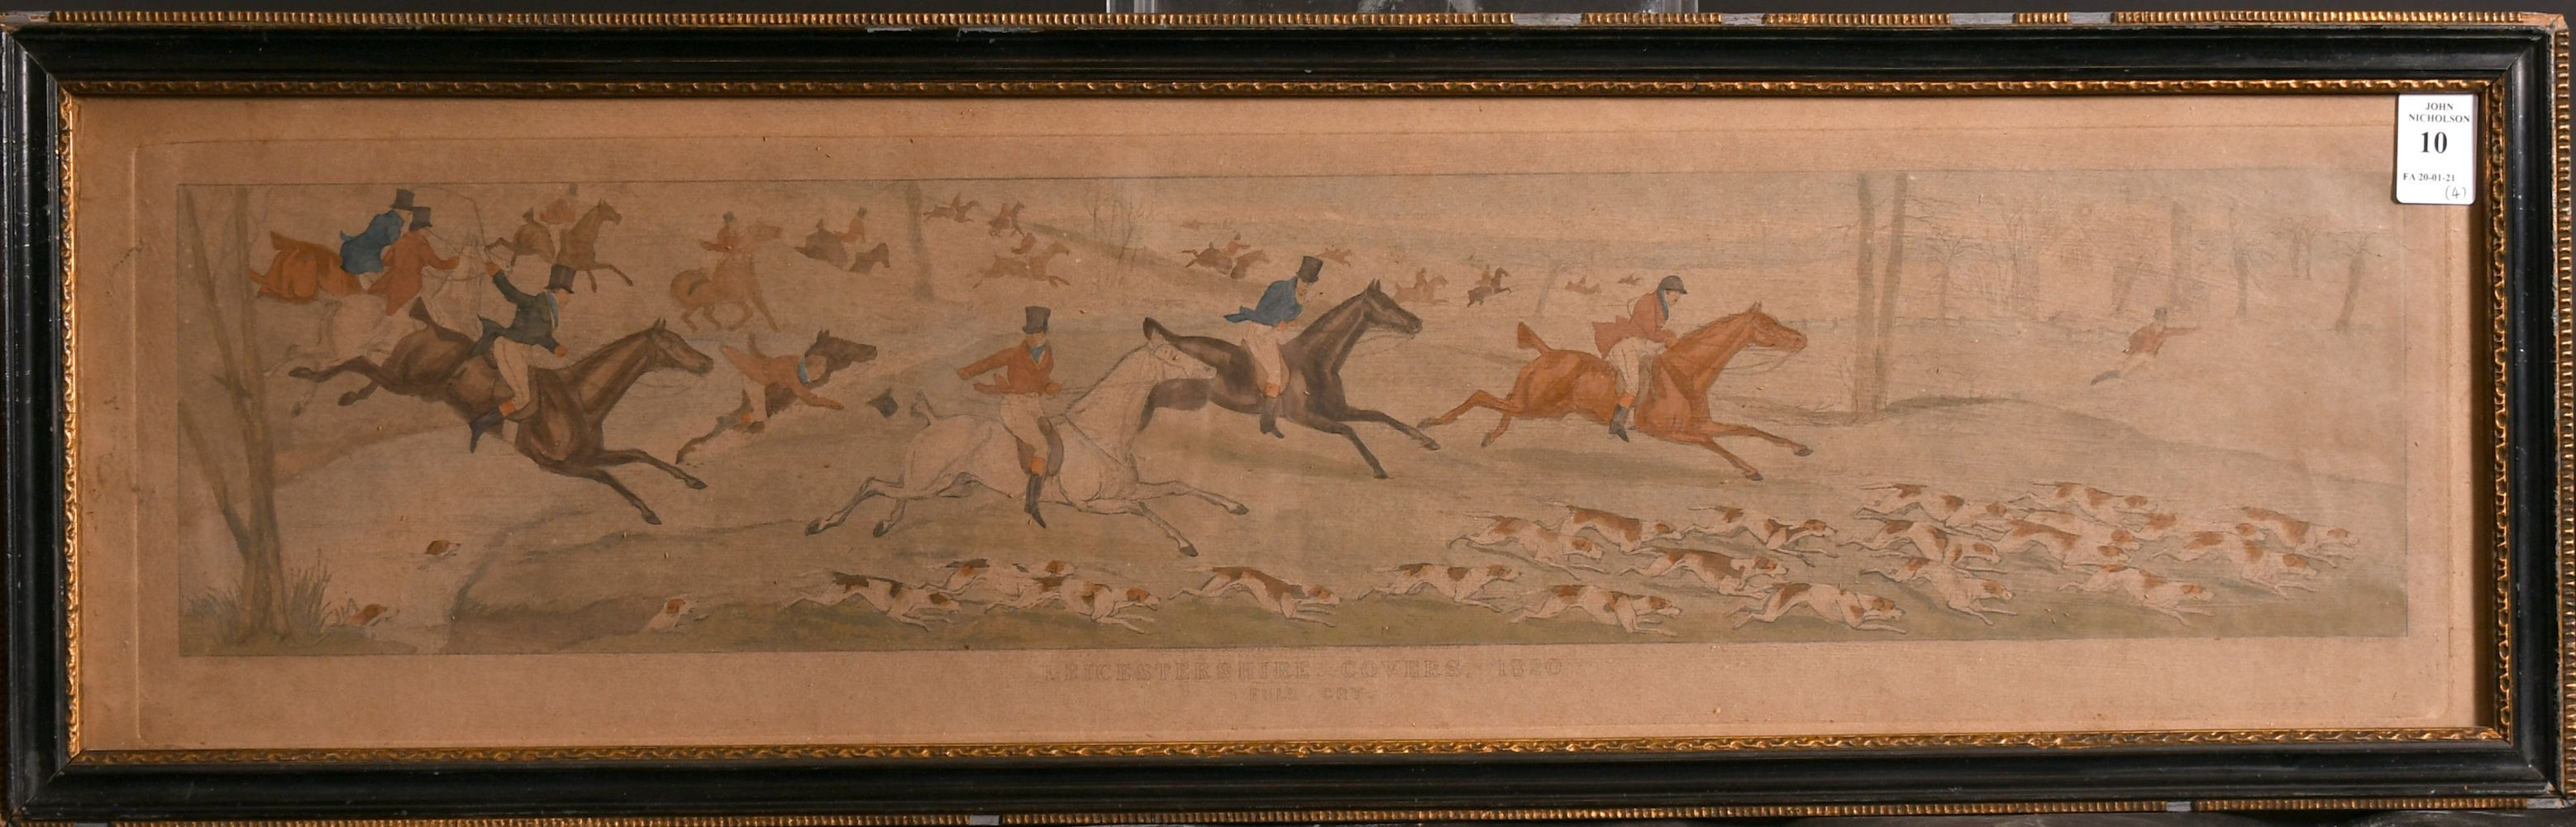 """After H. Alken, 'Leicestershire covers 1820' a set of four hunting prints, each 5"""" x 23.5"""". - Image 5 of 5"""